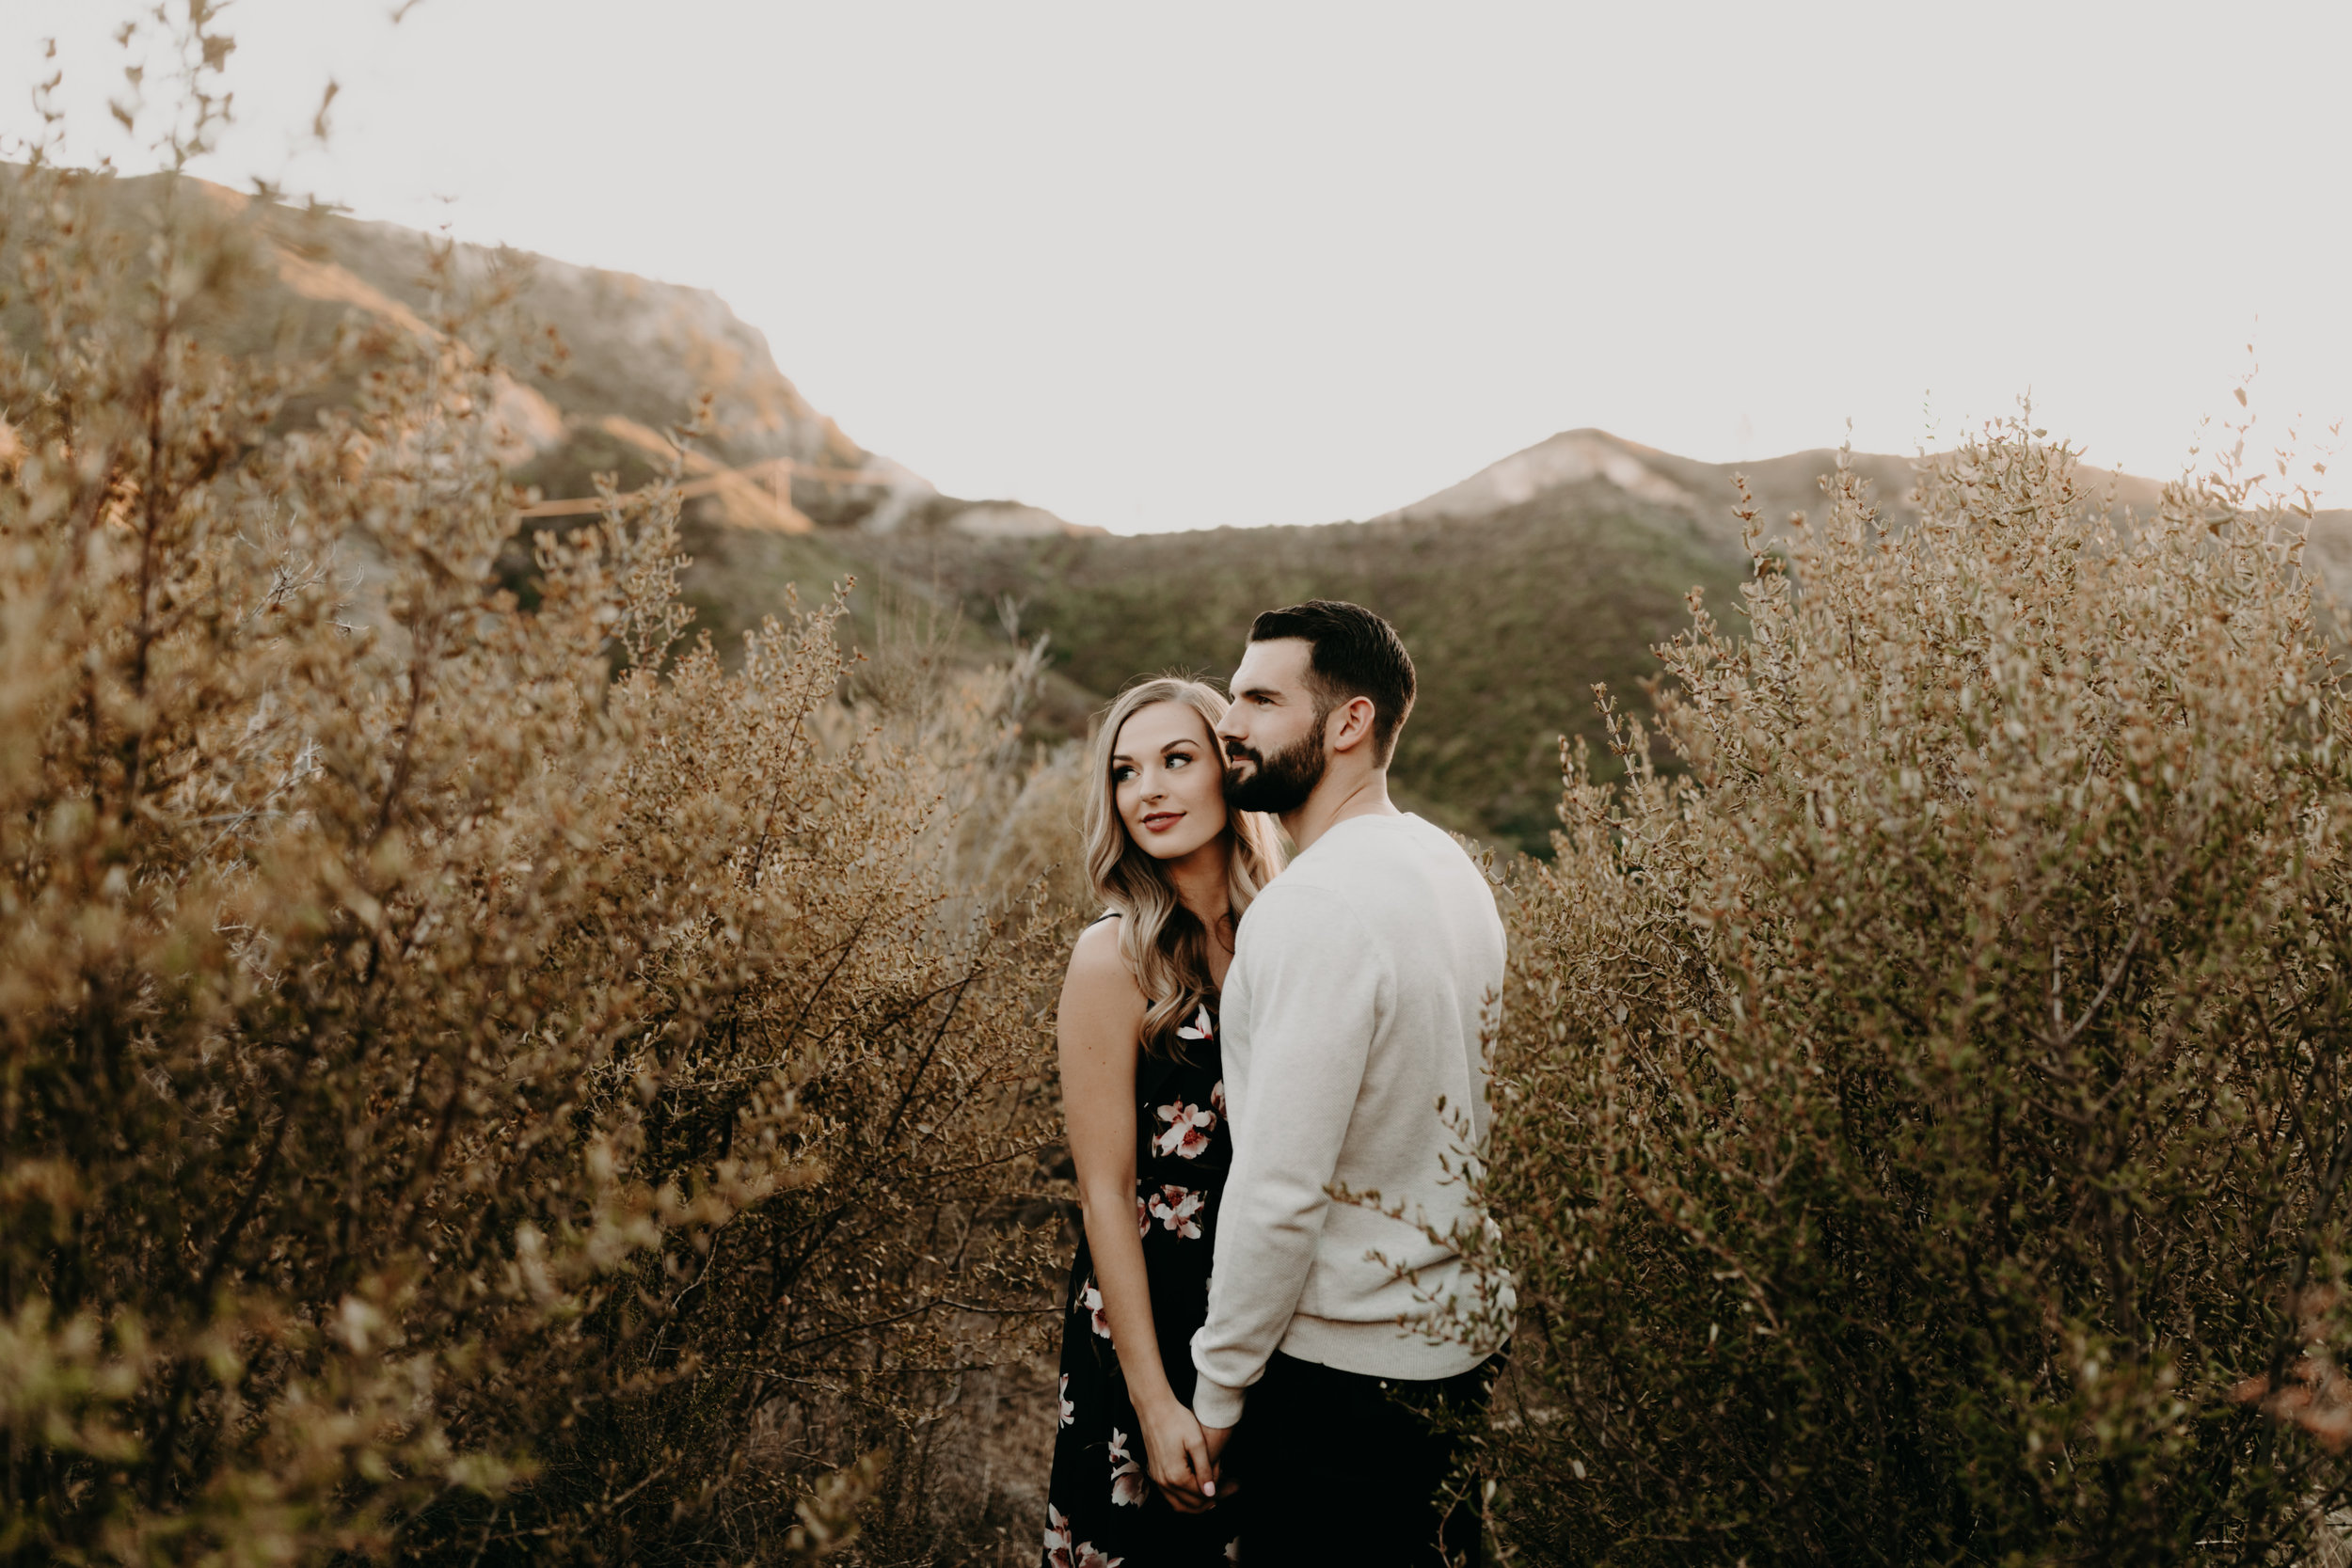 Los Angeles Engagement Session Matt & Shayna Emily Magers Photography-246.jpg